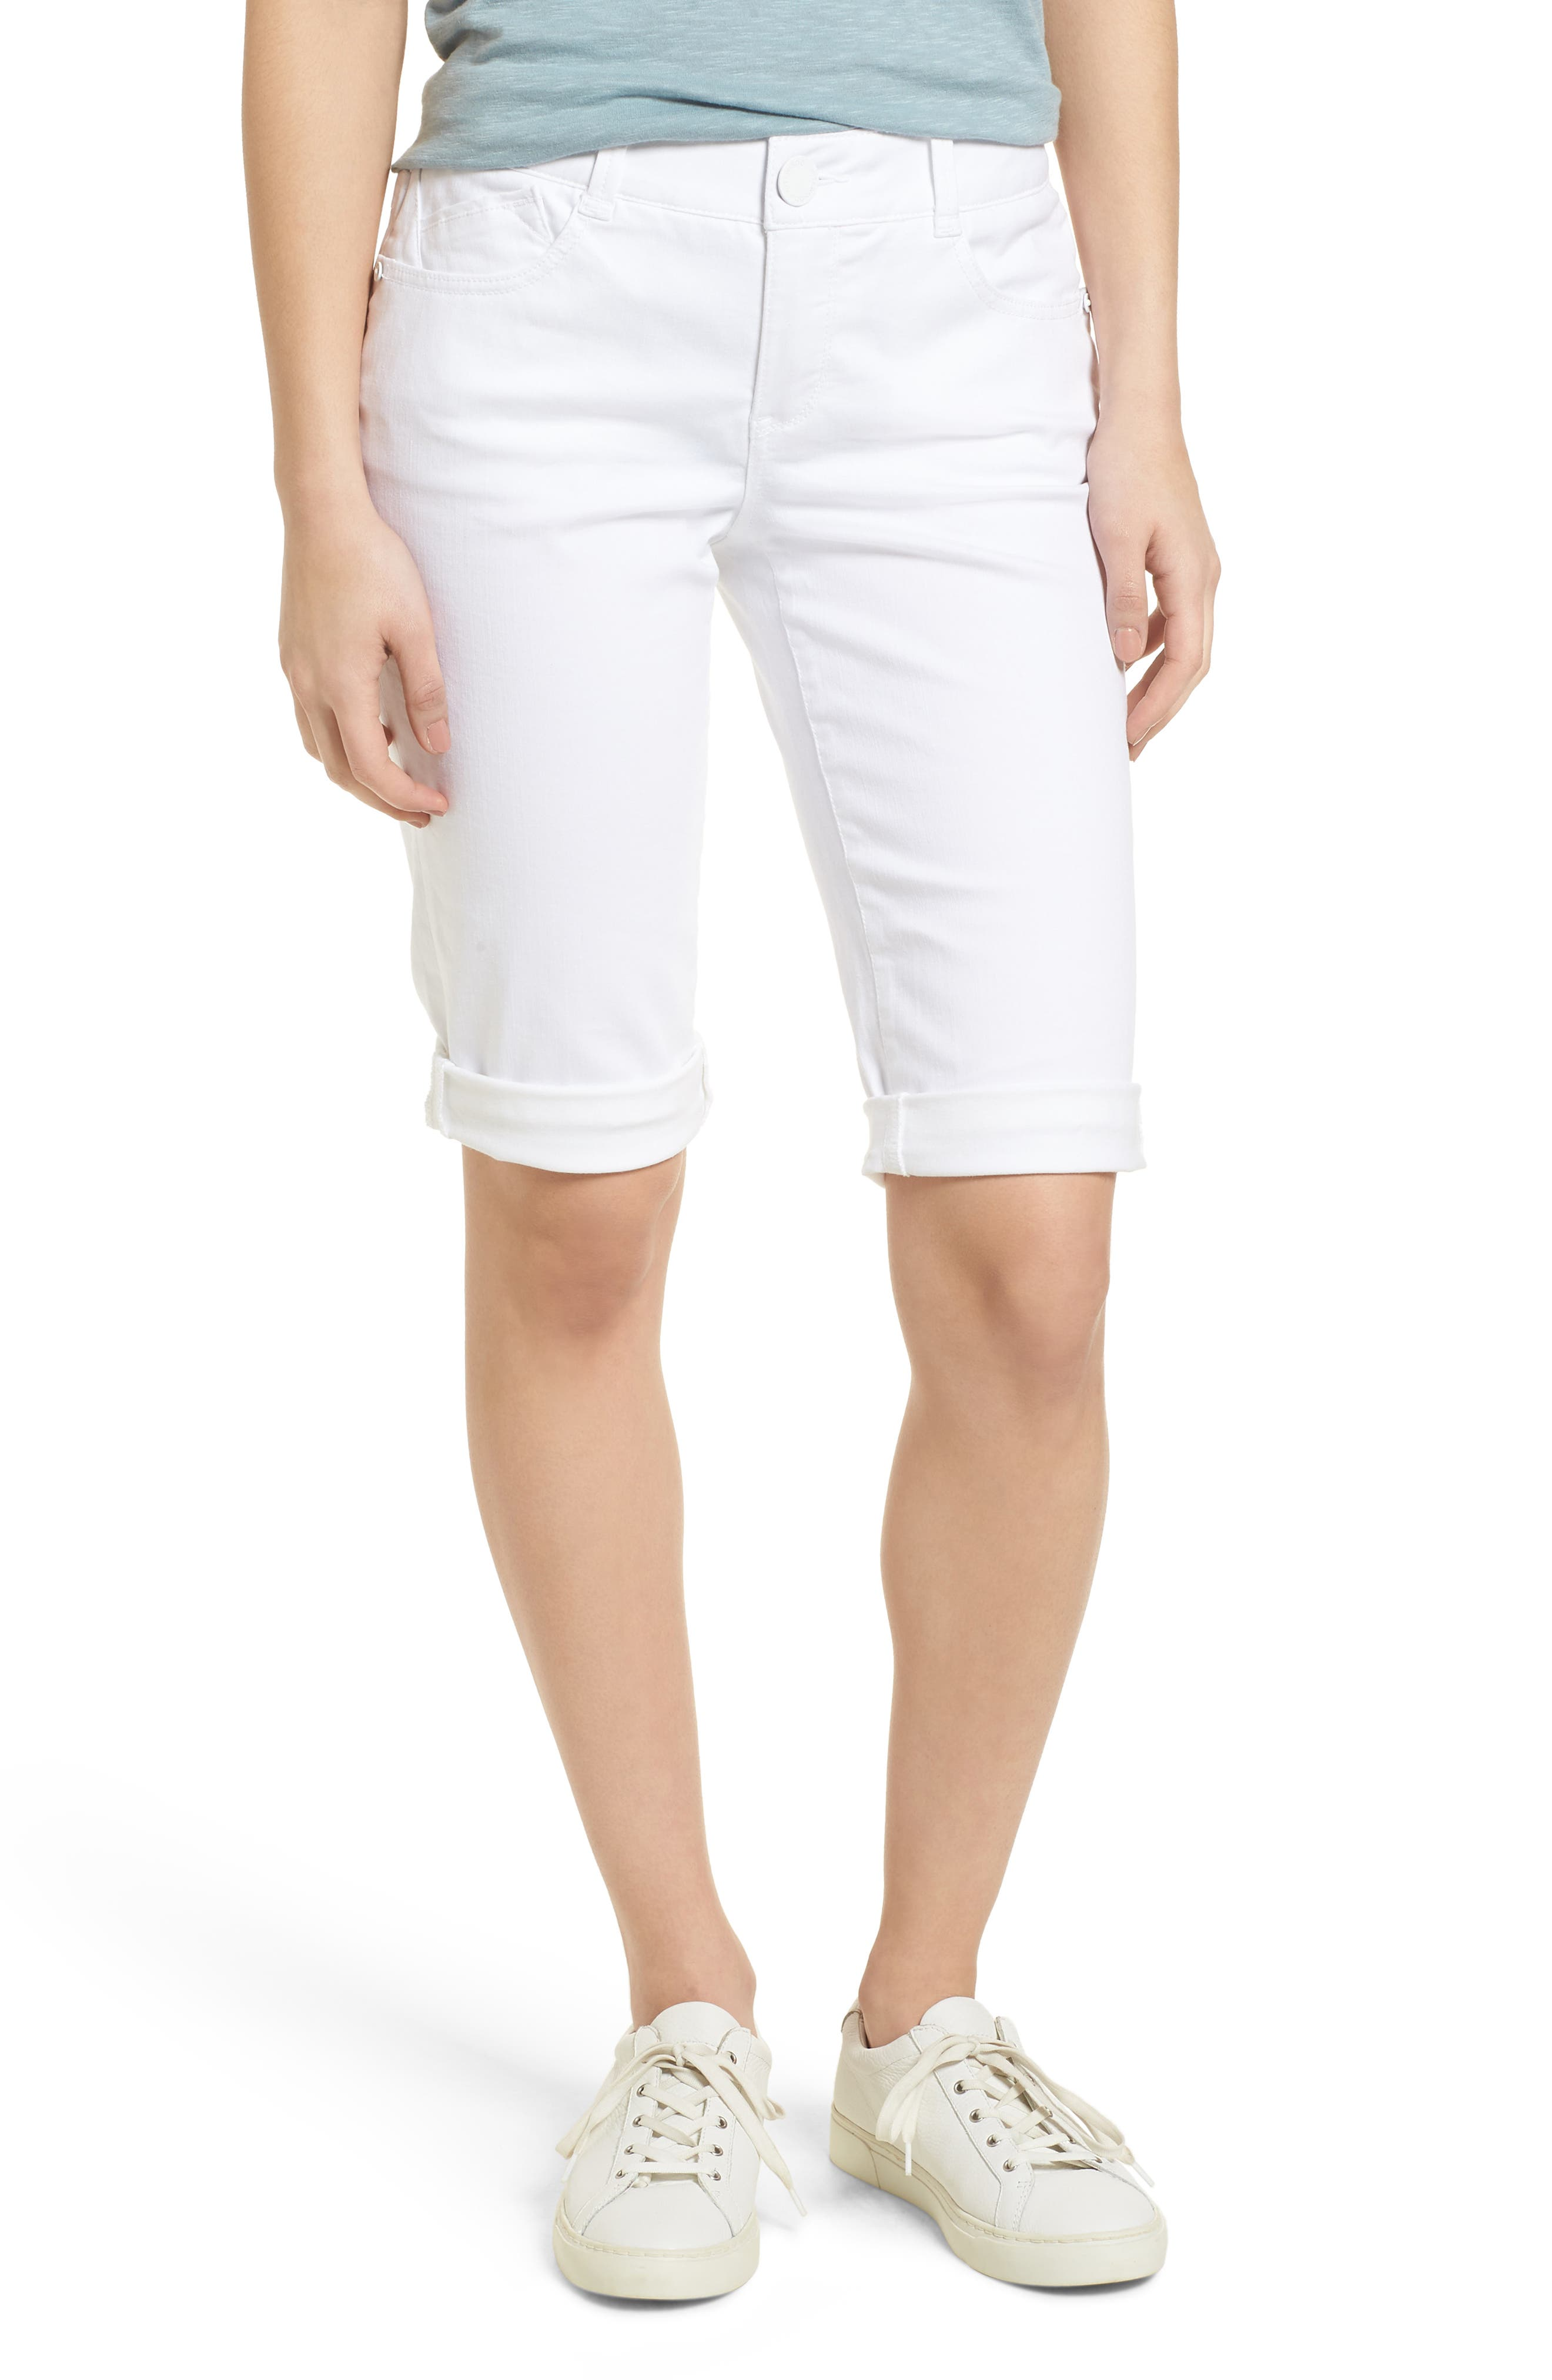 Wit & Wisdom Ab-solution White Bermuda Shorts (Nordstrom Exclusive)